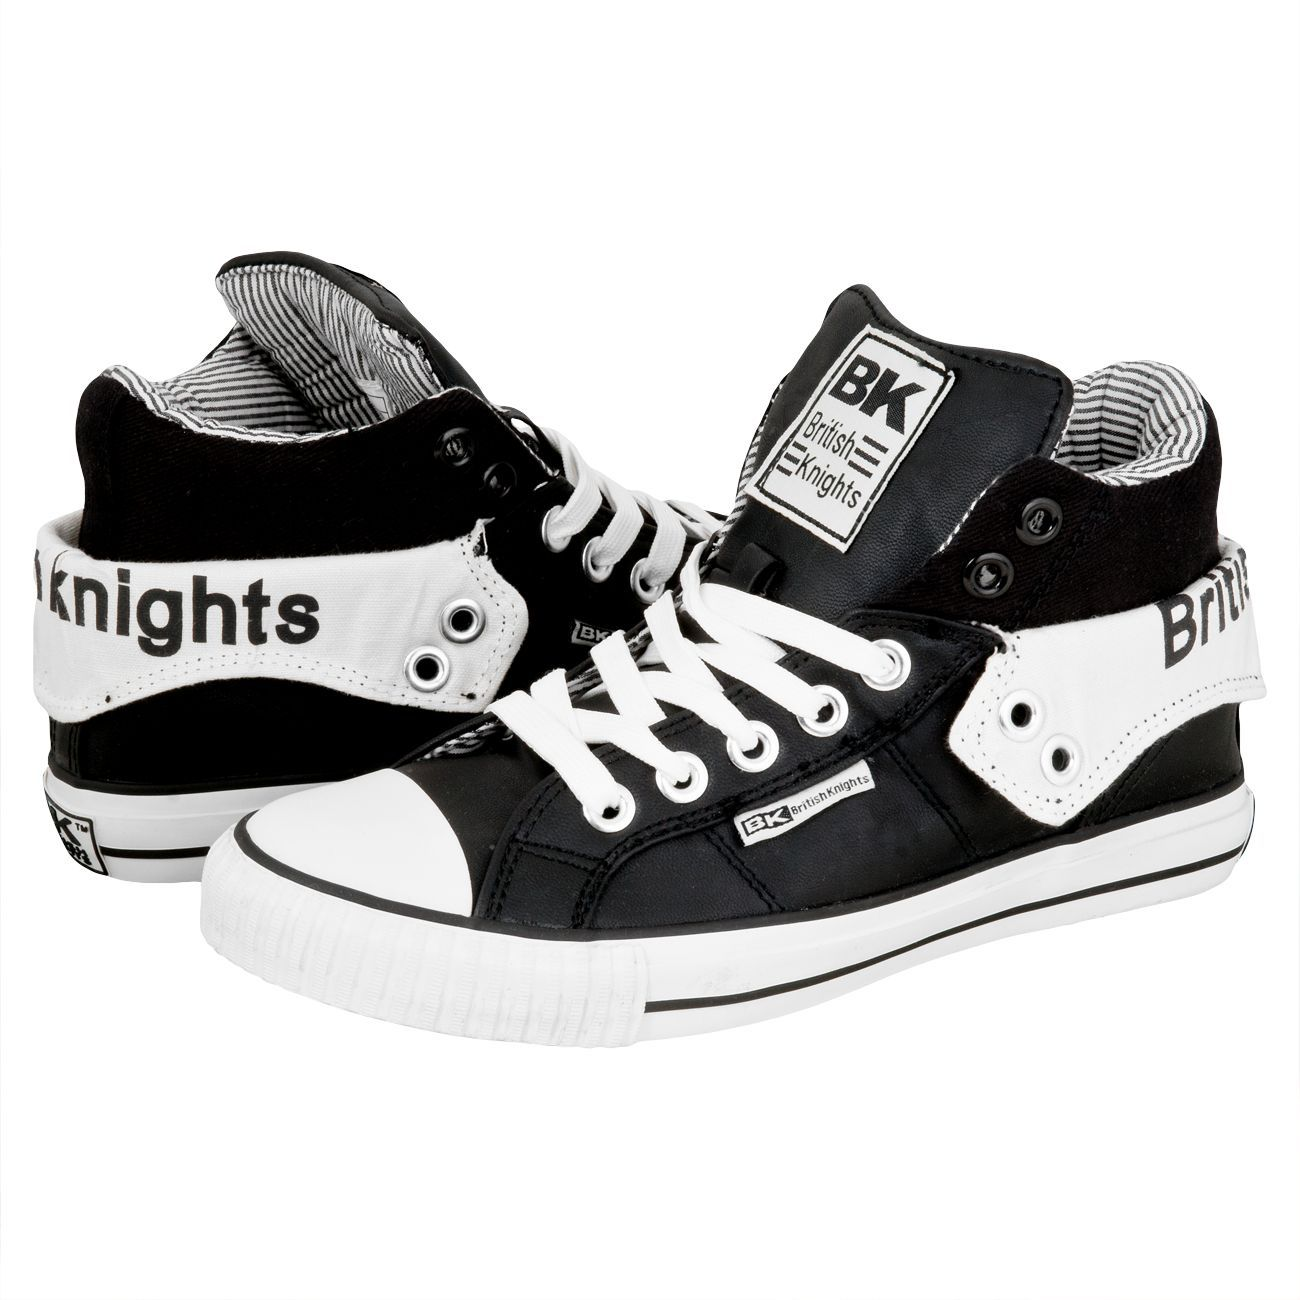 Order British Knights Sneakers online with the lowest price guarantee